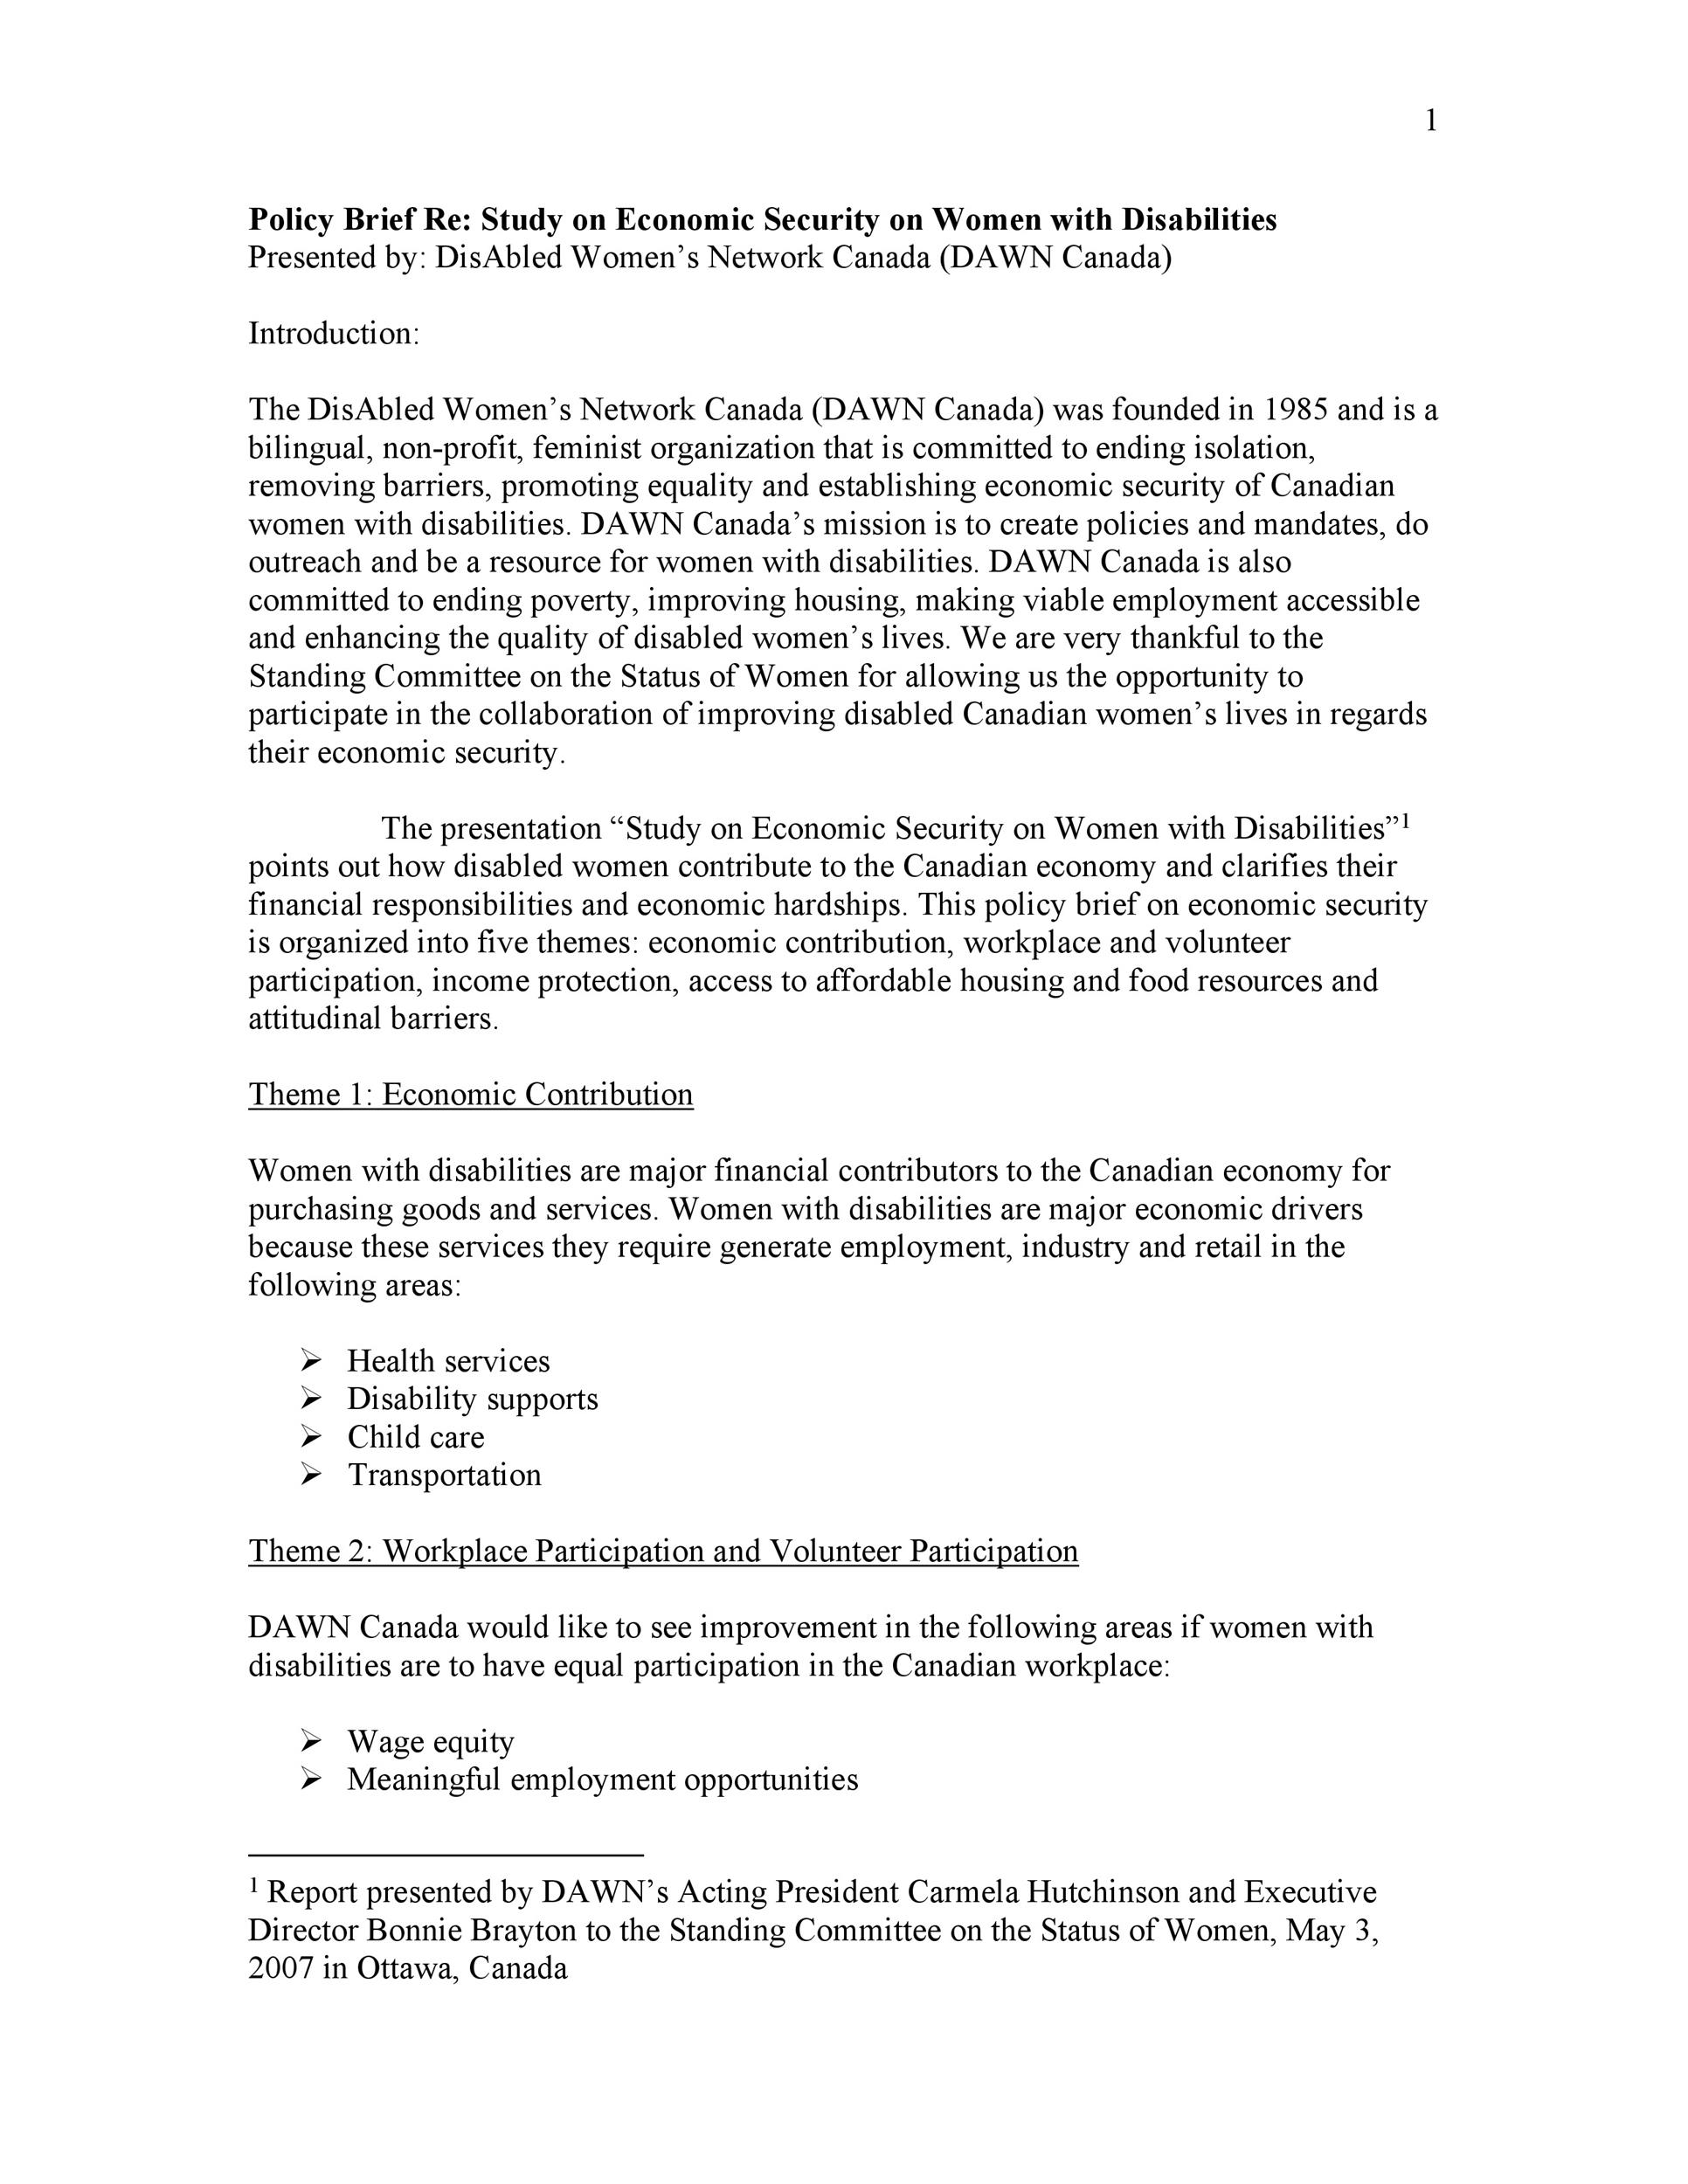 Free policy brief template 46